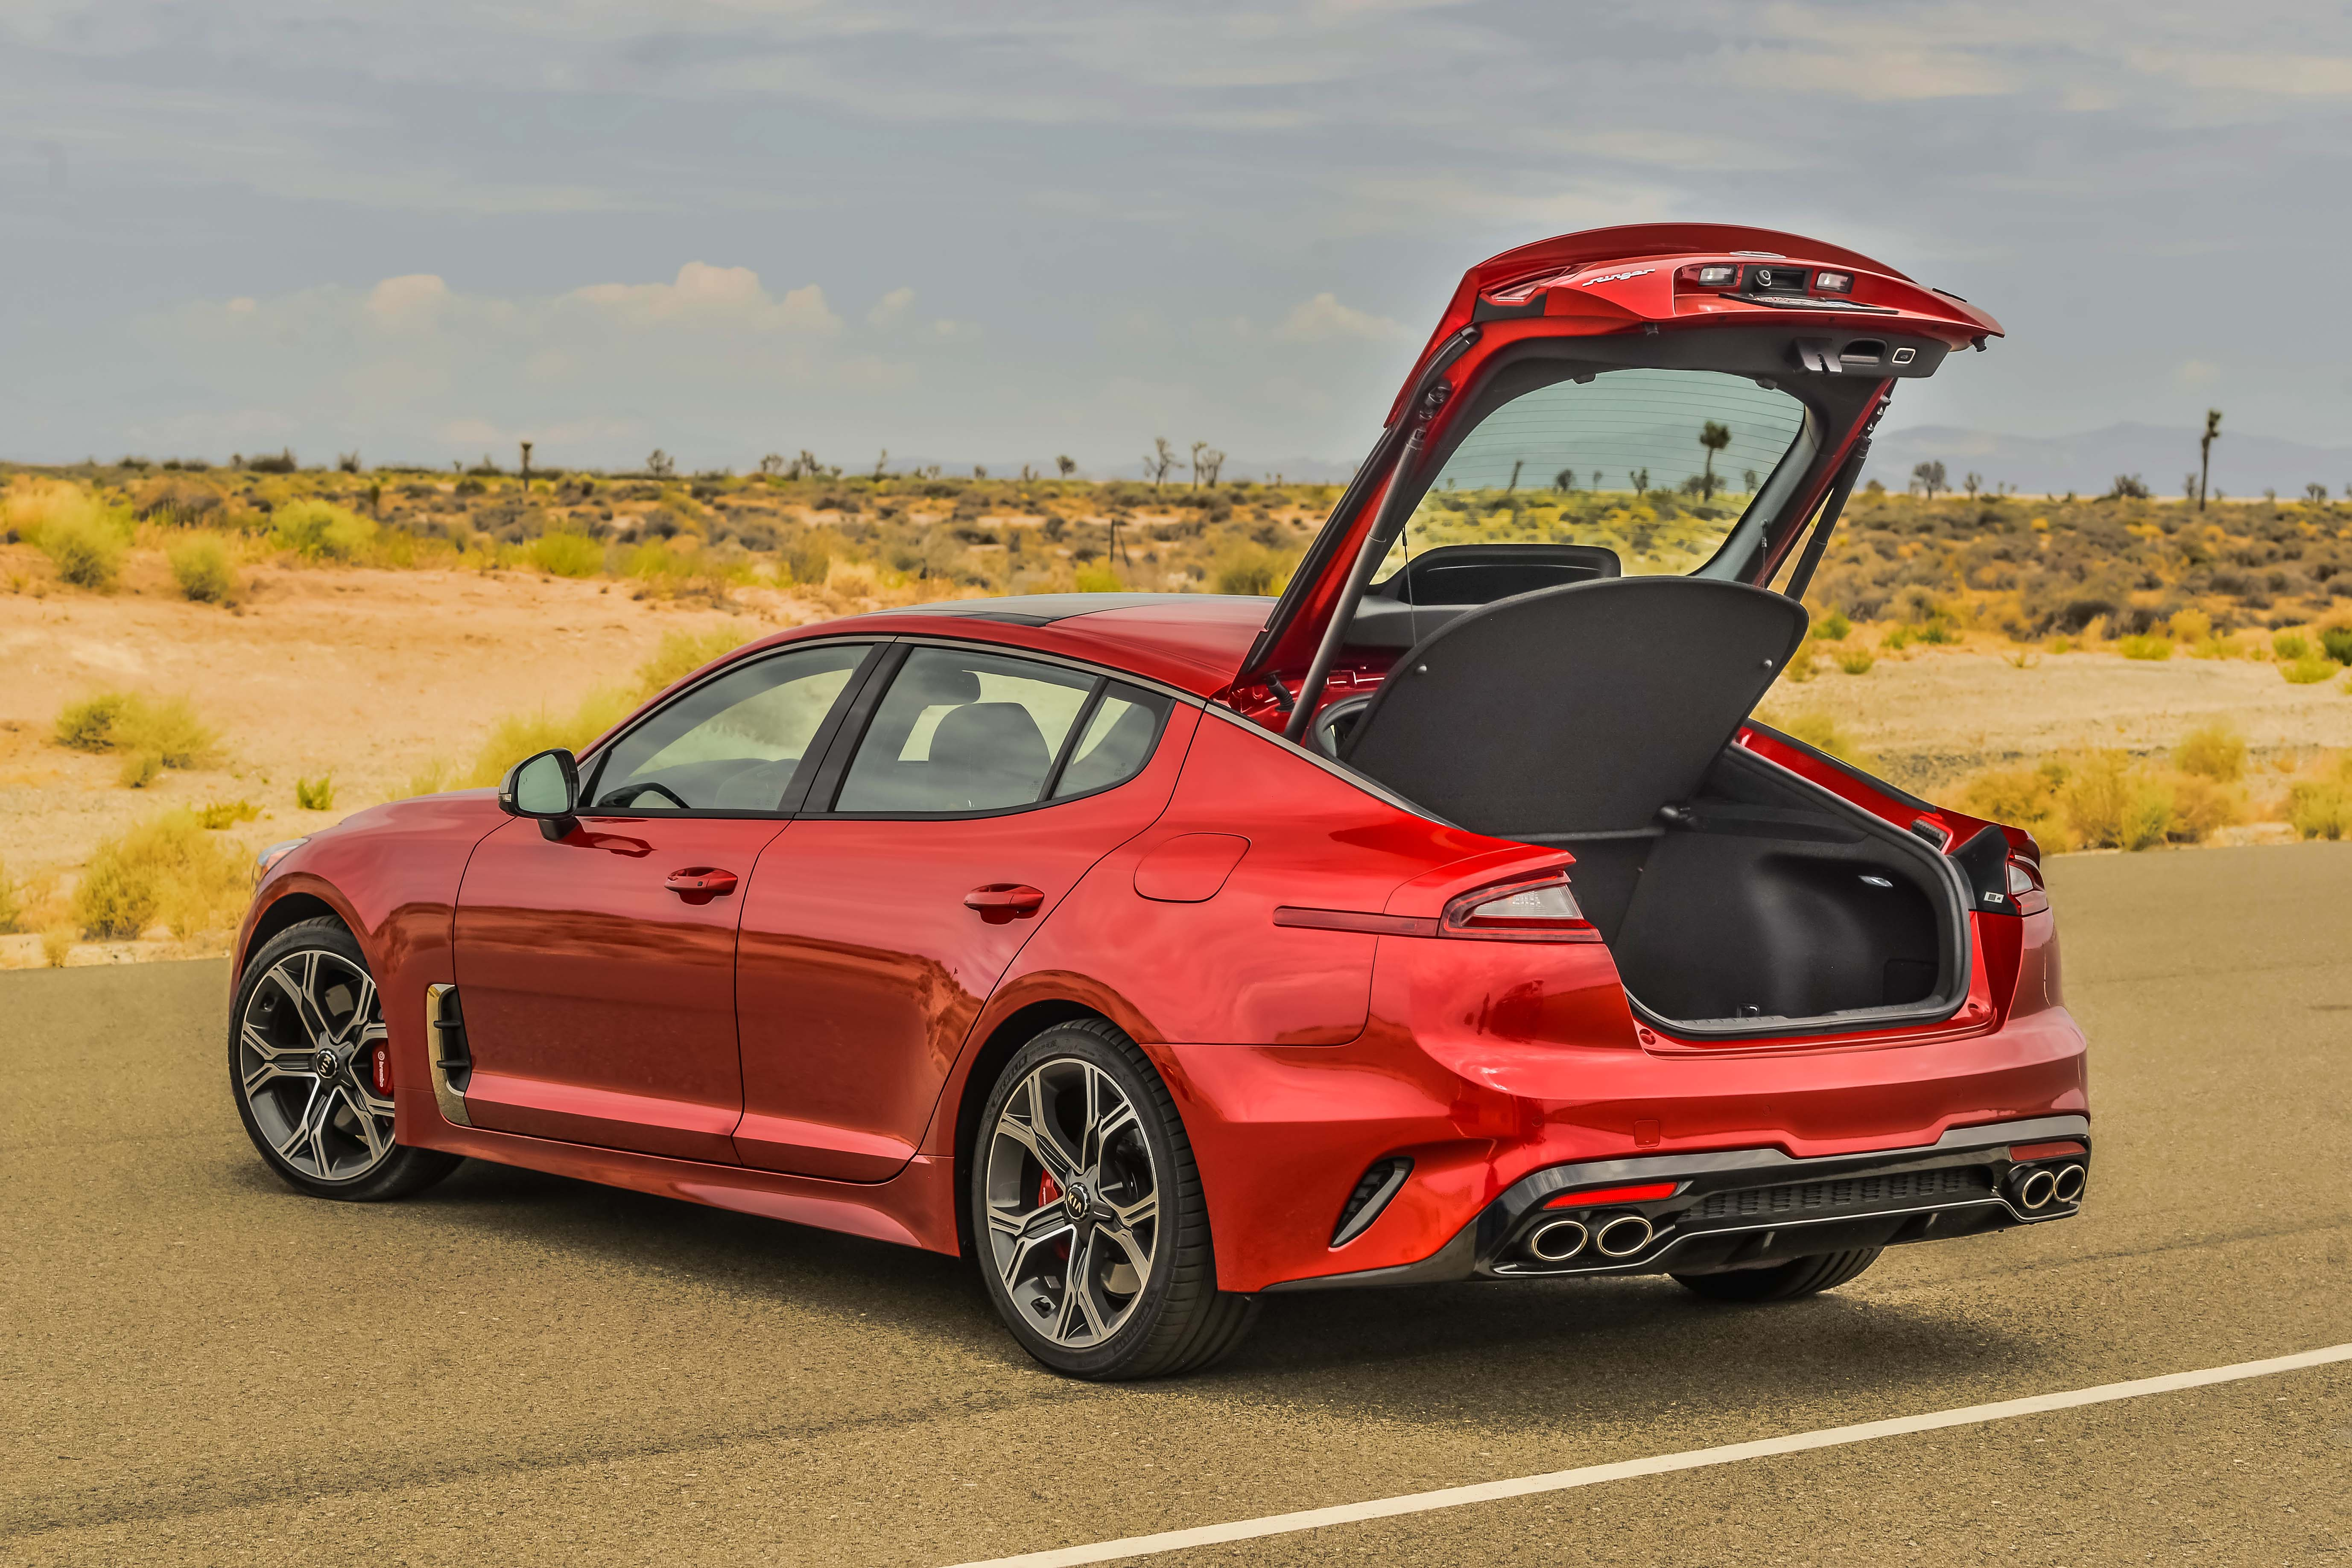 Audi 2.0 T >> 2018 Kia Stinger ready to roll in the US – 2.0T, 3.3 V6, more power than Audi S5, faster than ...